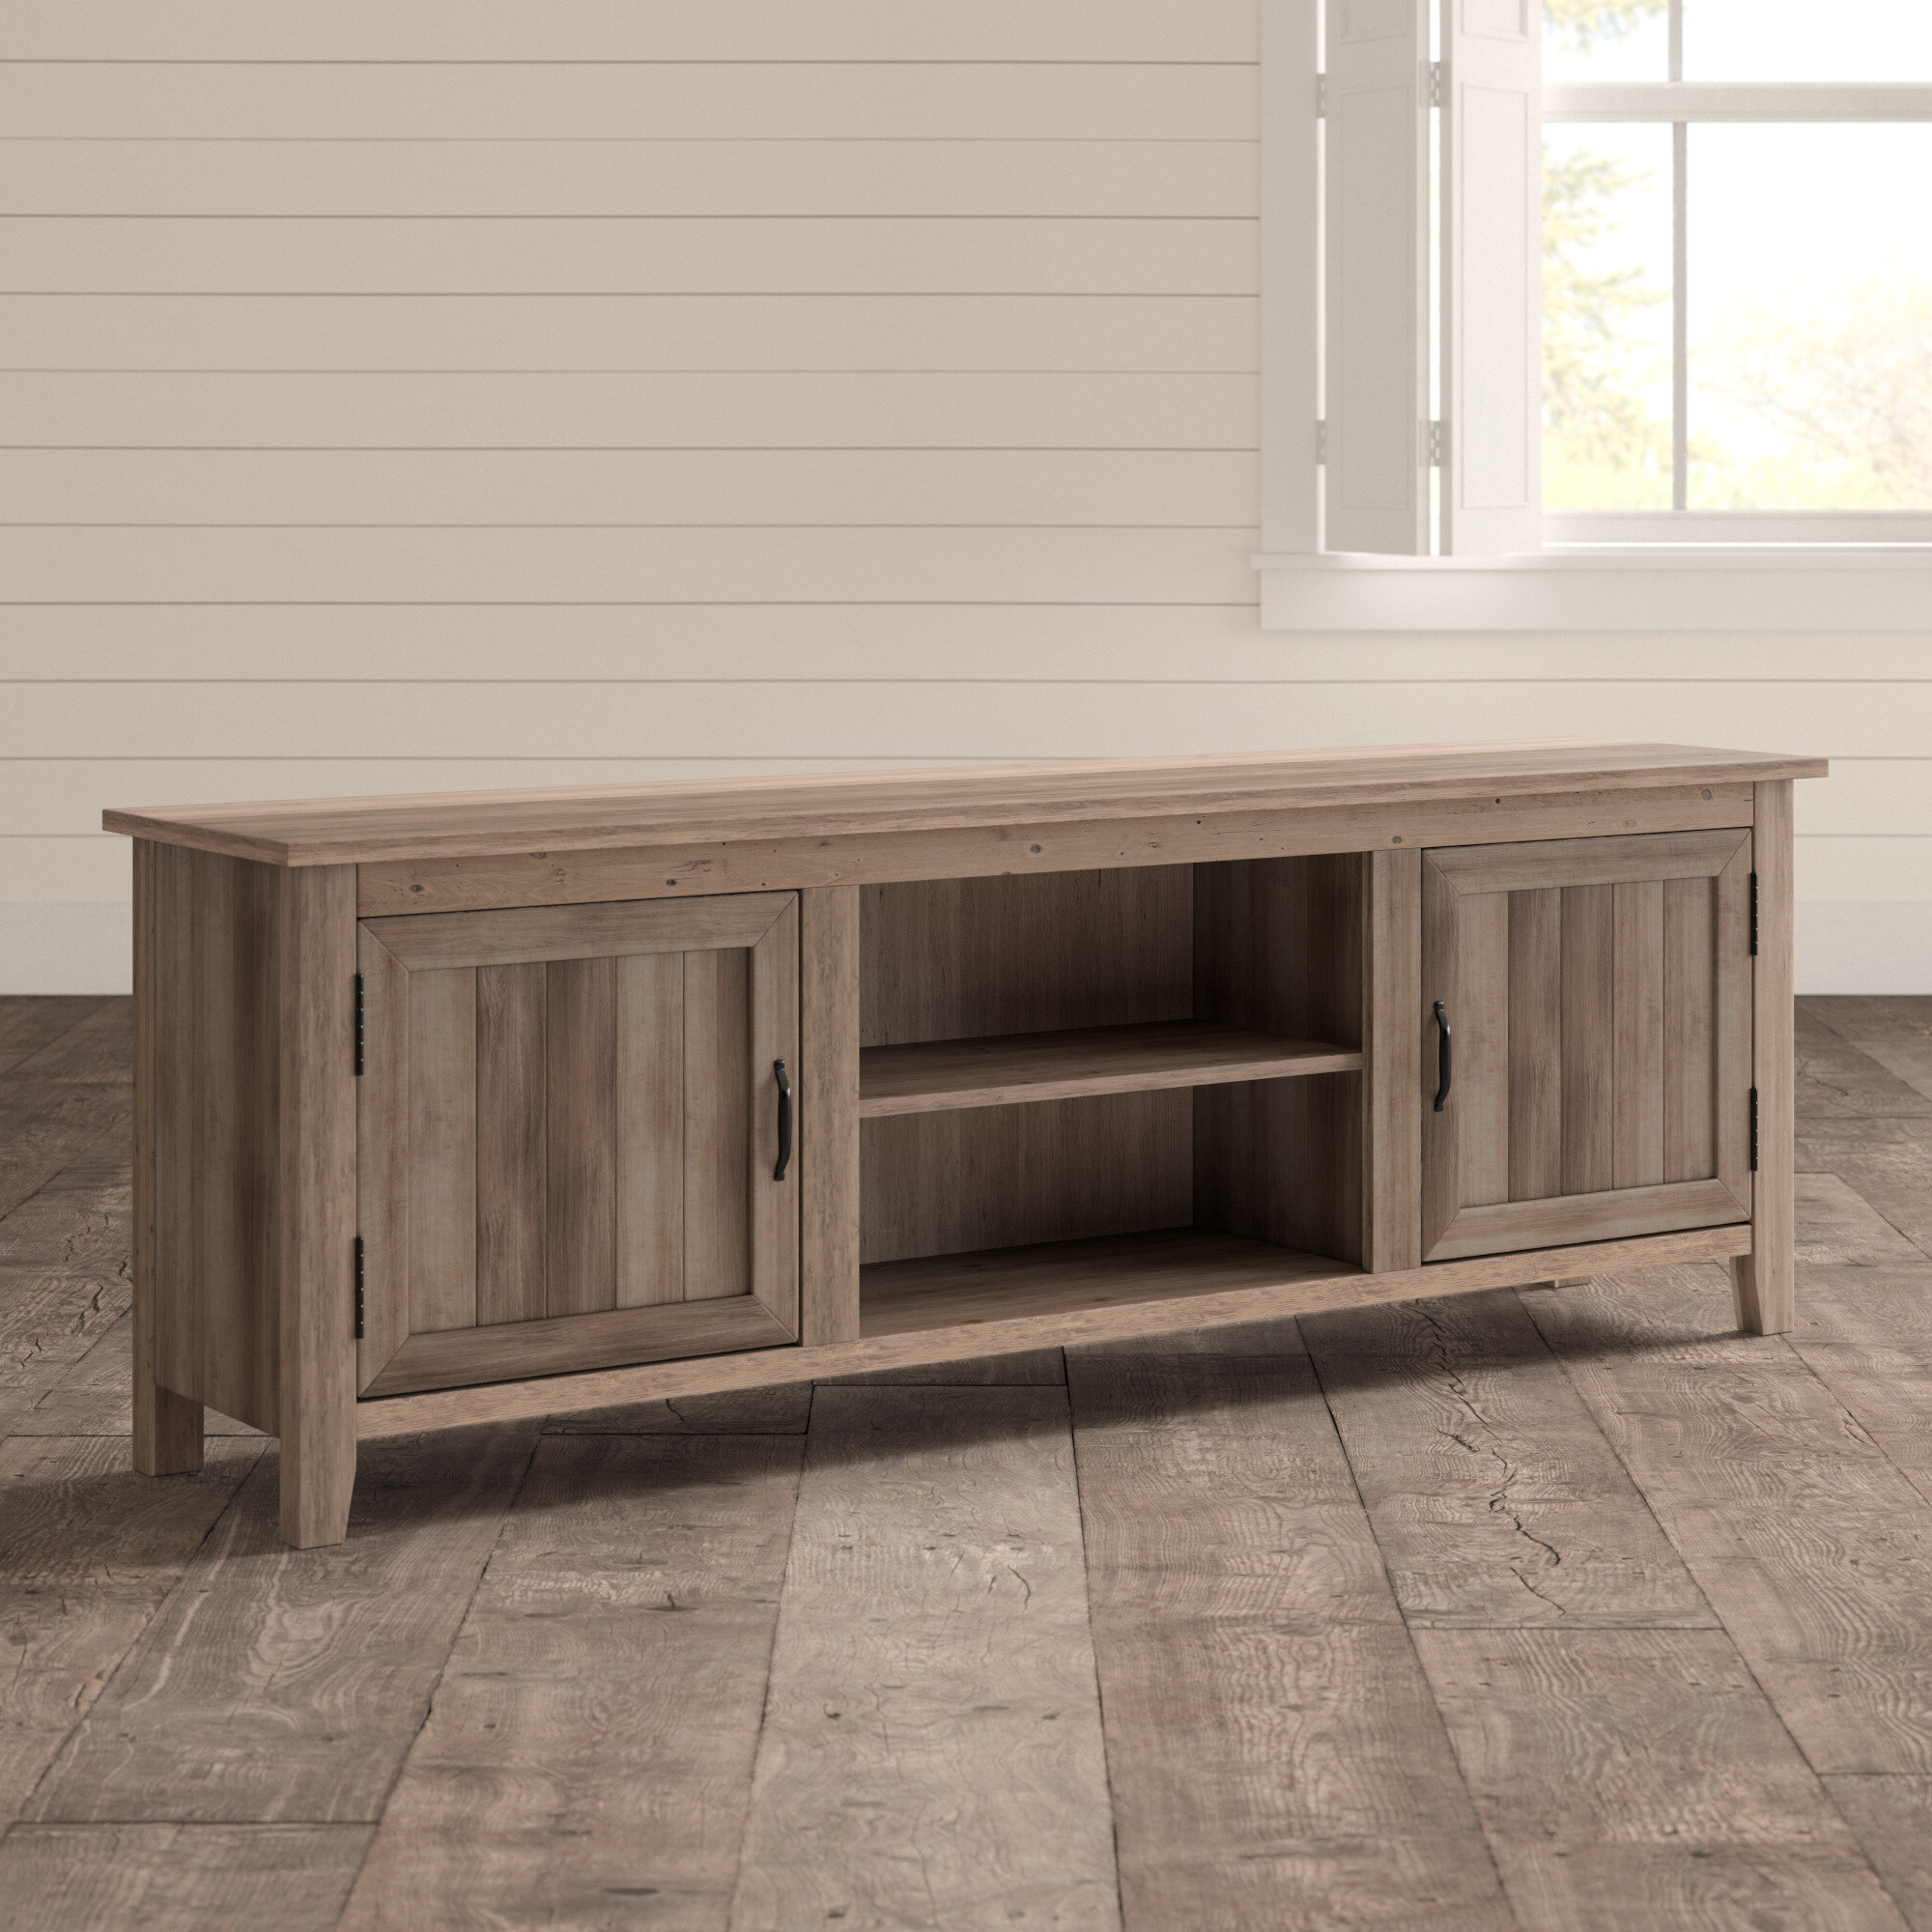 Gracie Oaks | Birch Lane Intended For Jessenia Sideboards (View 11 of 20)